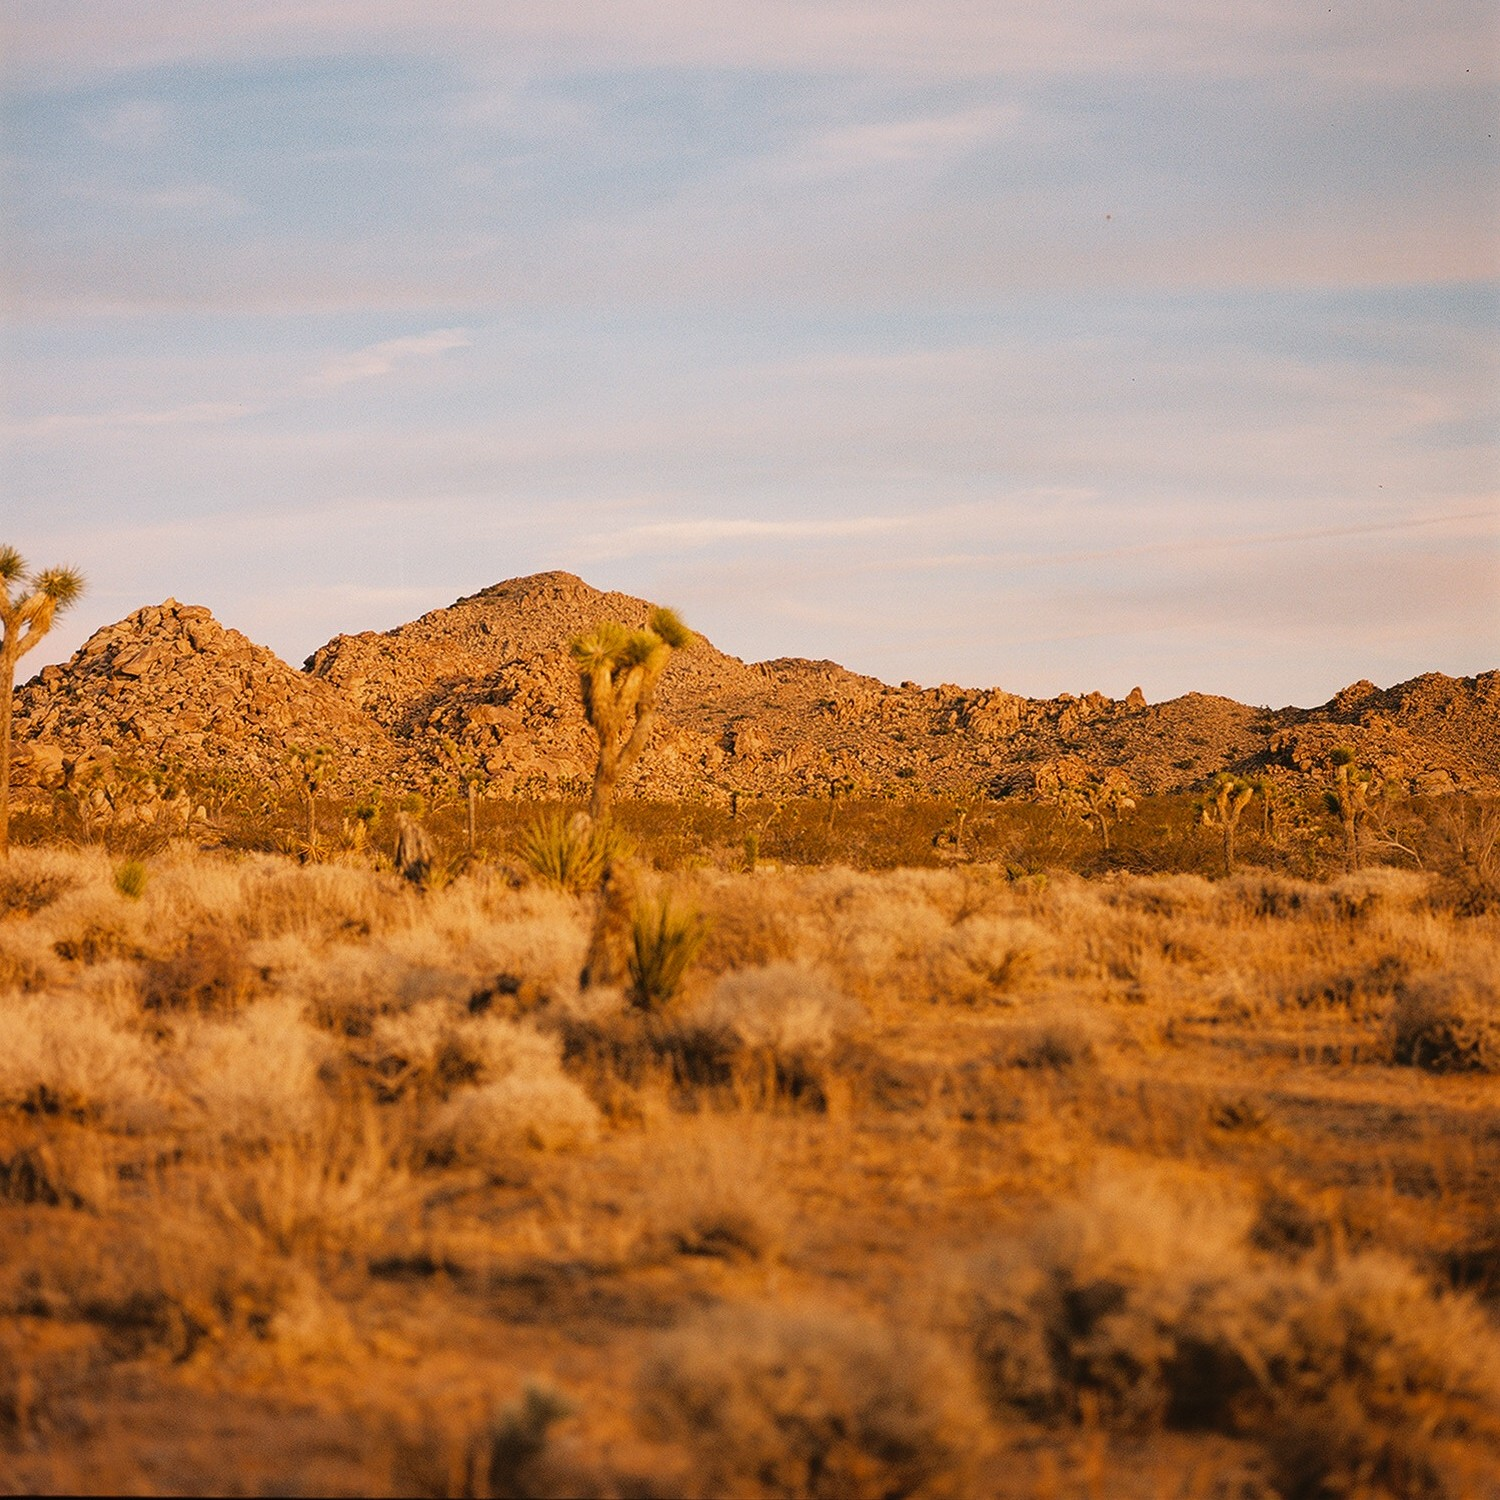 Joshua Tree national park landscape with rocks at sunset in Southern California